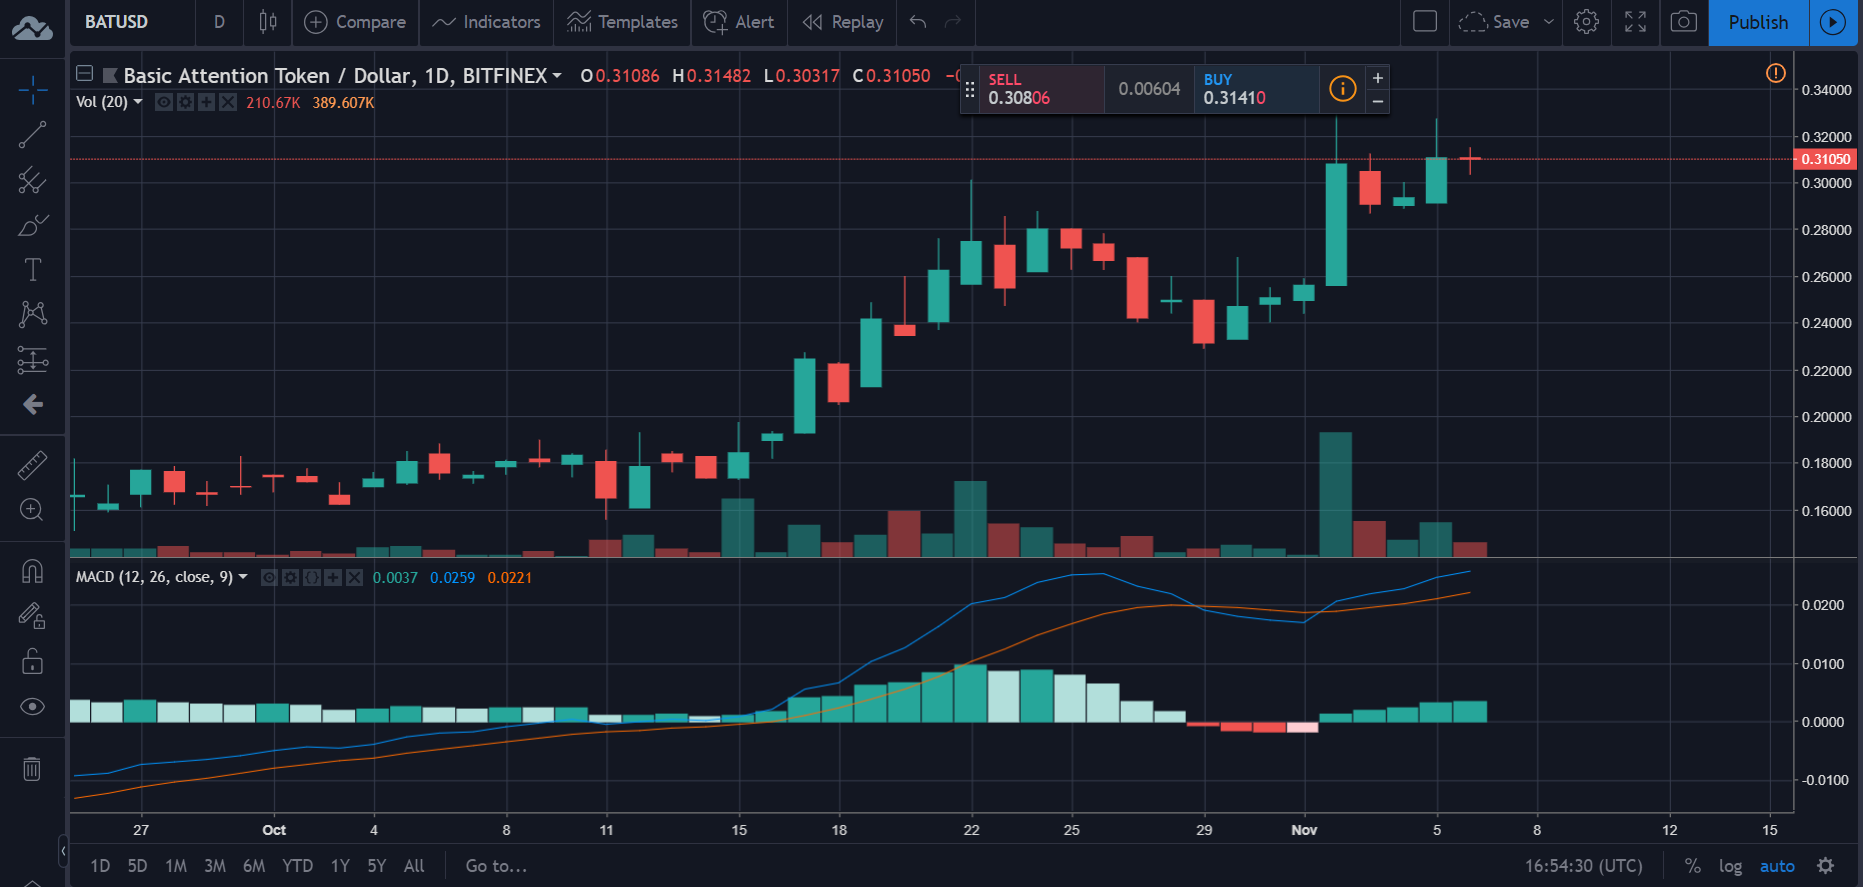 BAT price chart | Source: TradingView